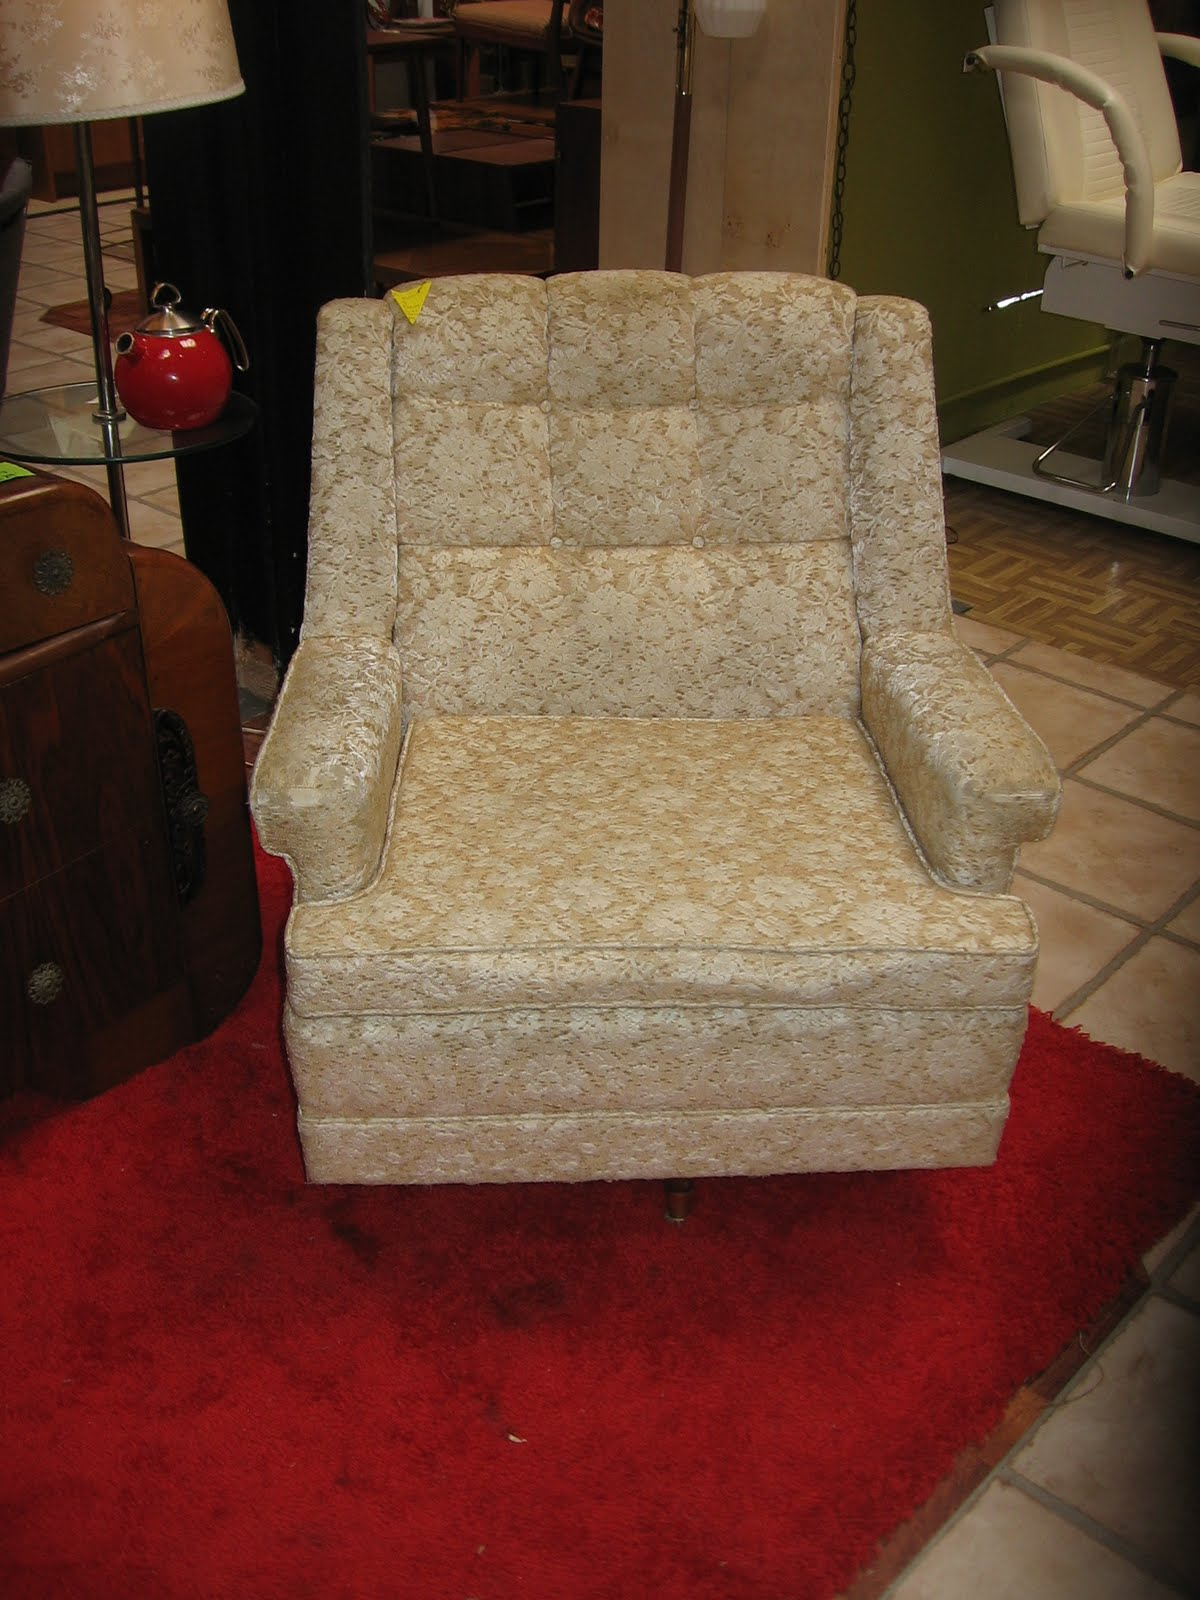 [Vintage+Swivel+Chair+9_11_09.JPG]